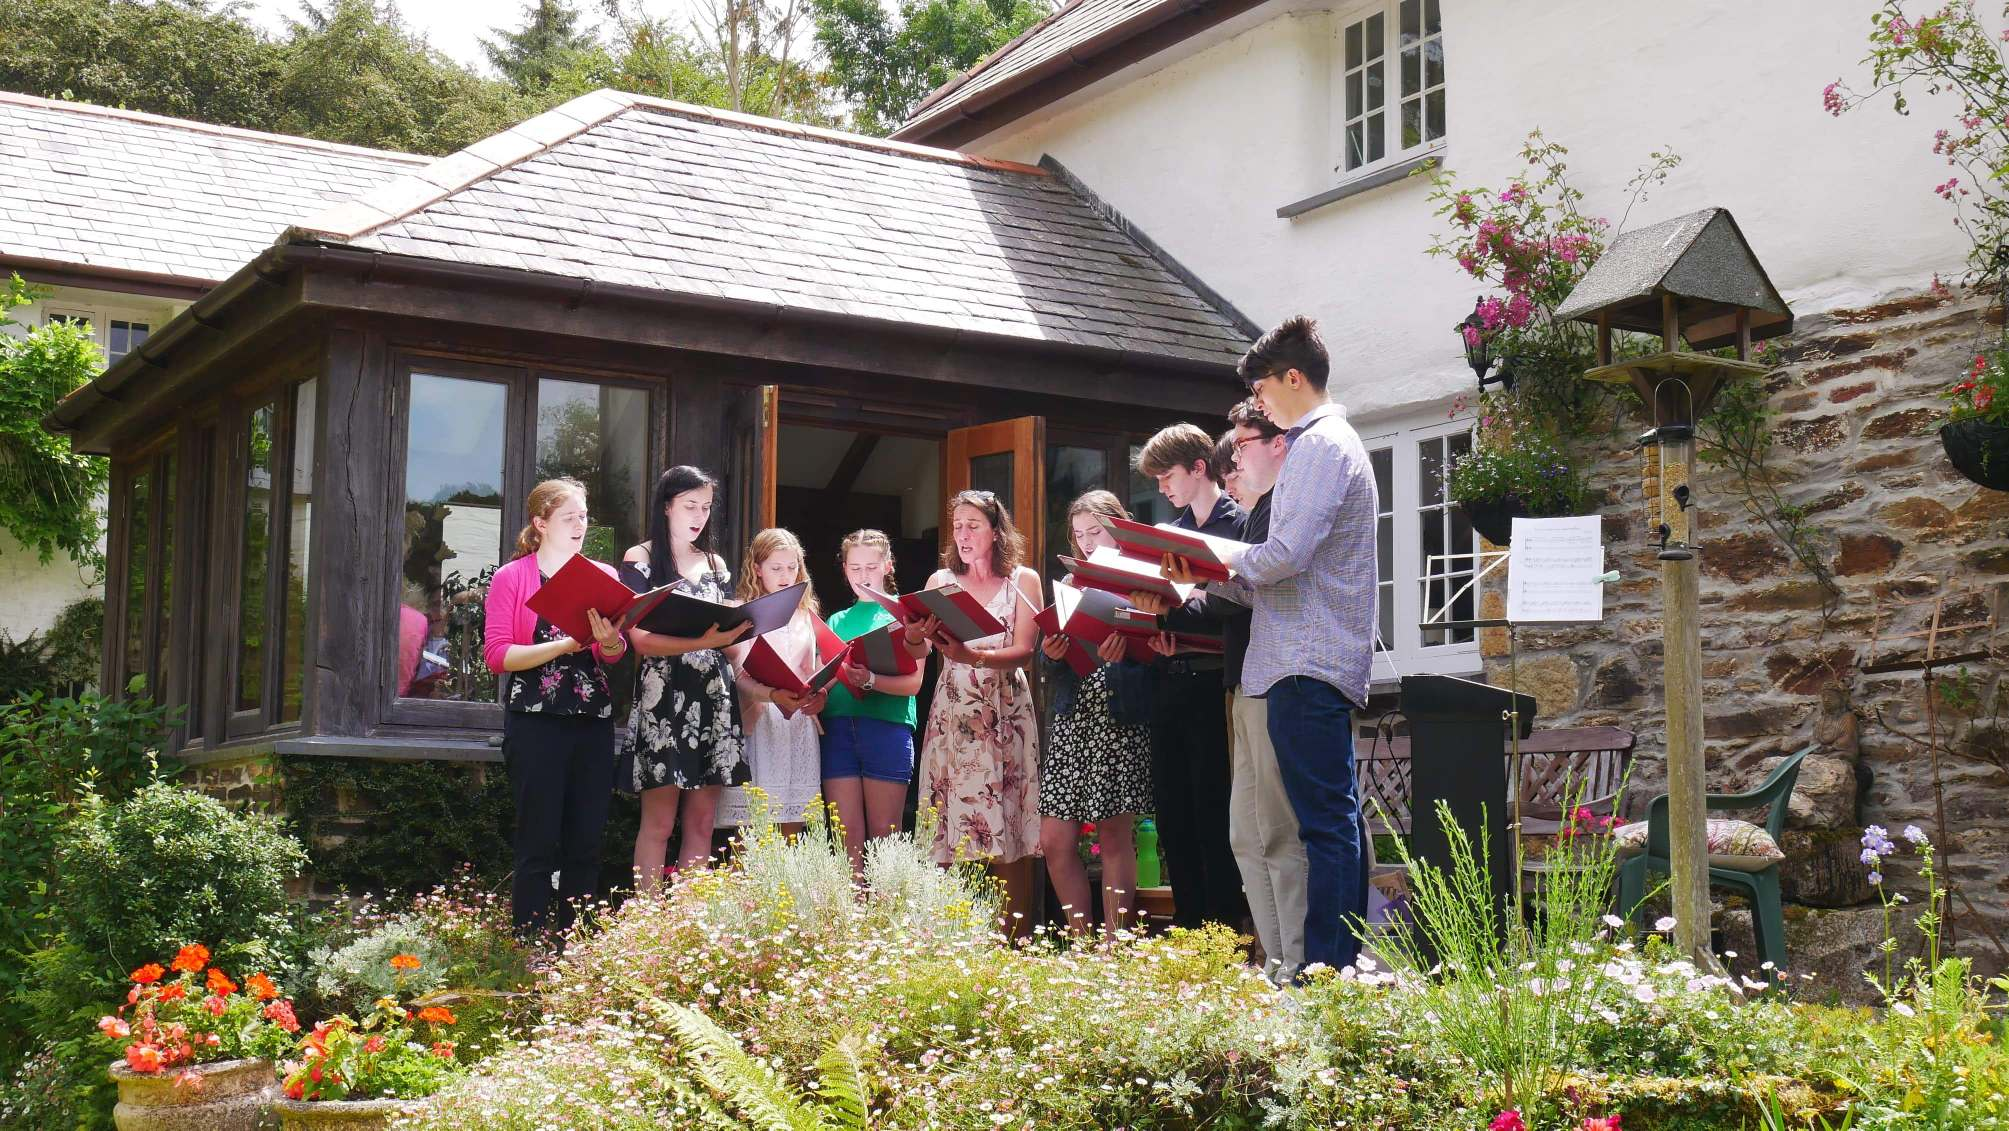 Cornwall Youth Chamber Choir in performance at Brackenwoods Open Garden in June under the direction of their director, Christine Judge.